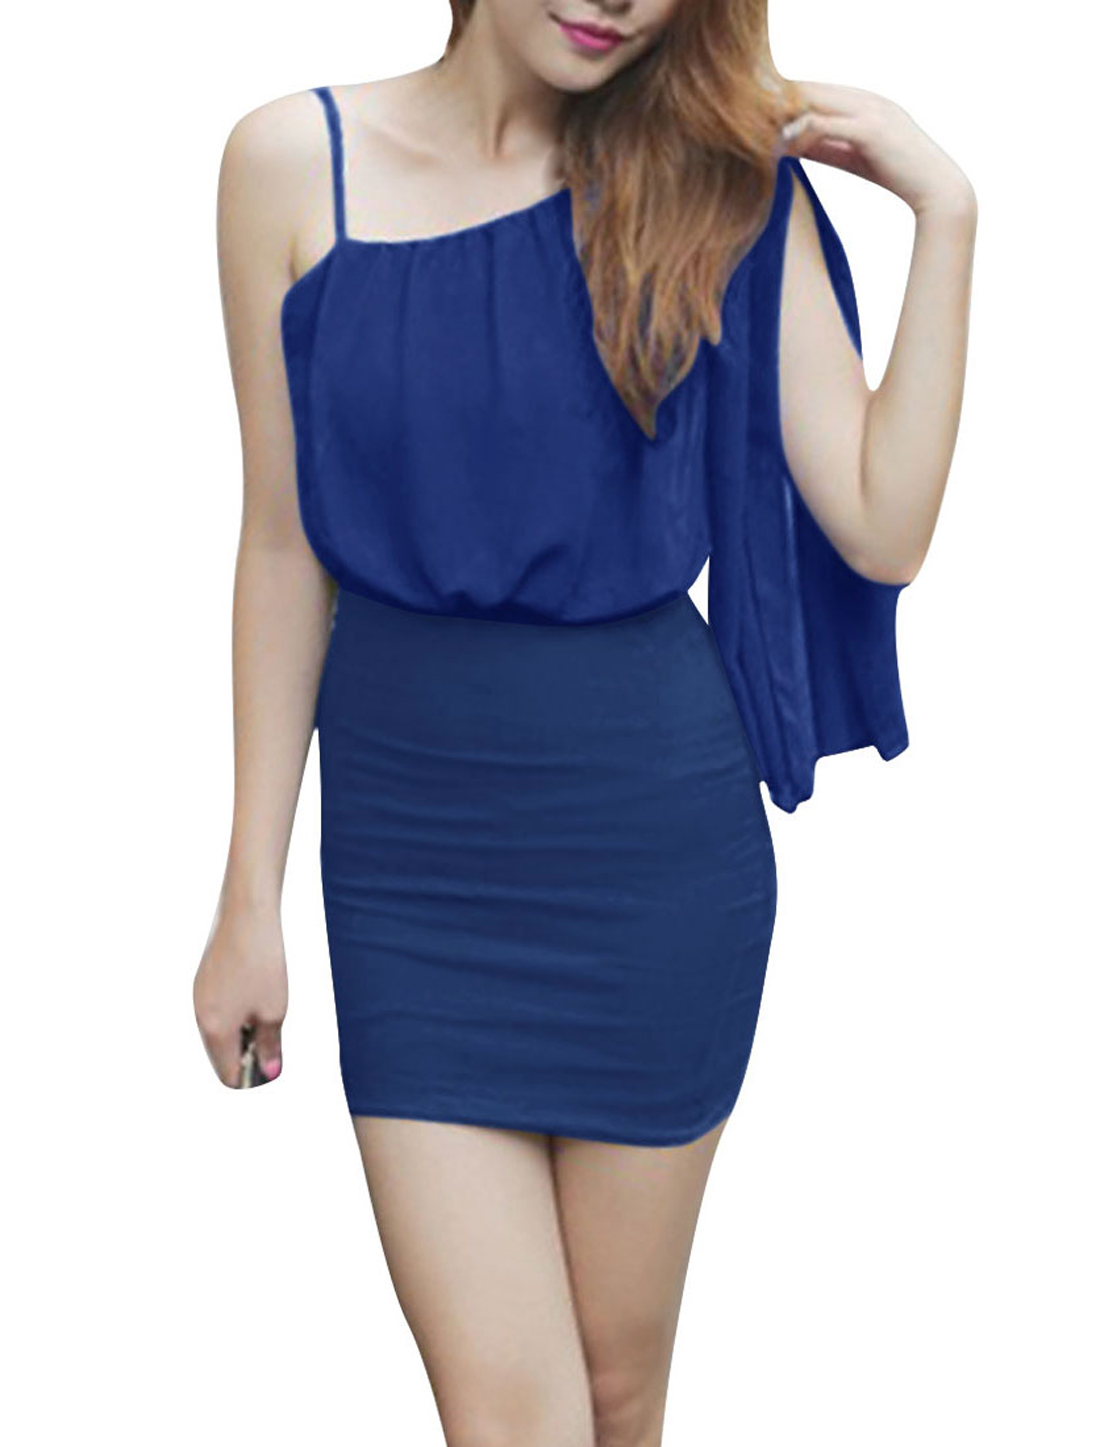 Ladies Solid Color Slim Fit Design Sexy Casual Dress XS Blue